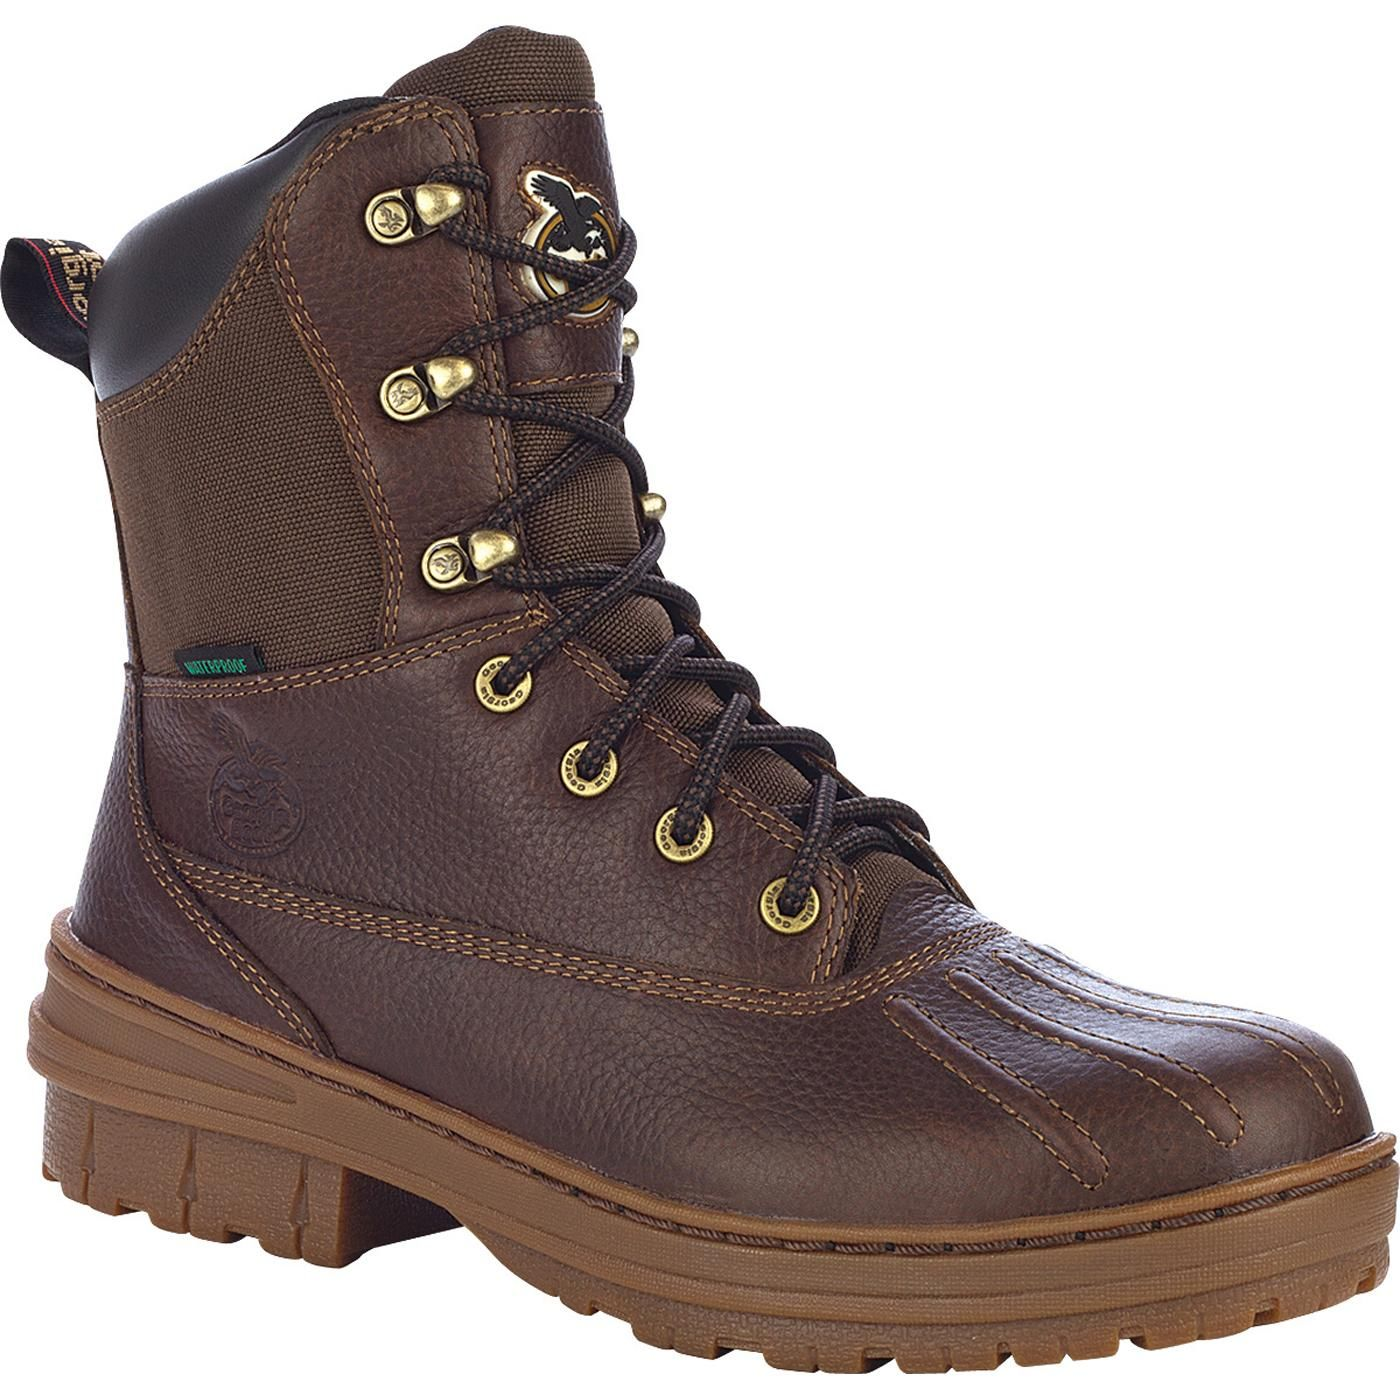 a183222d970 Channel grooves on boot's toe prevents dew and water from collecting ...